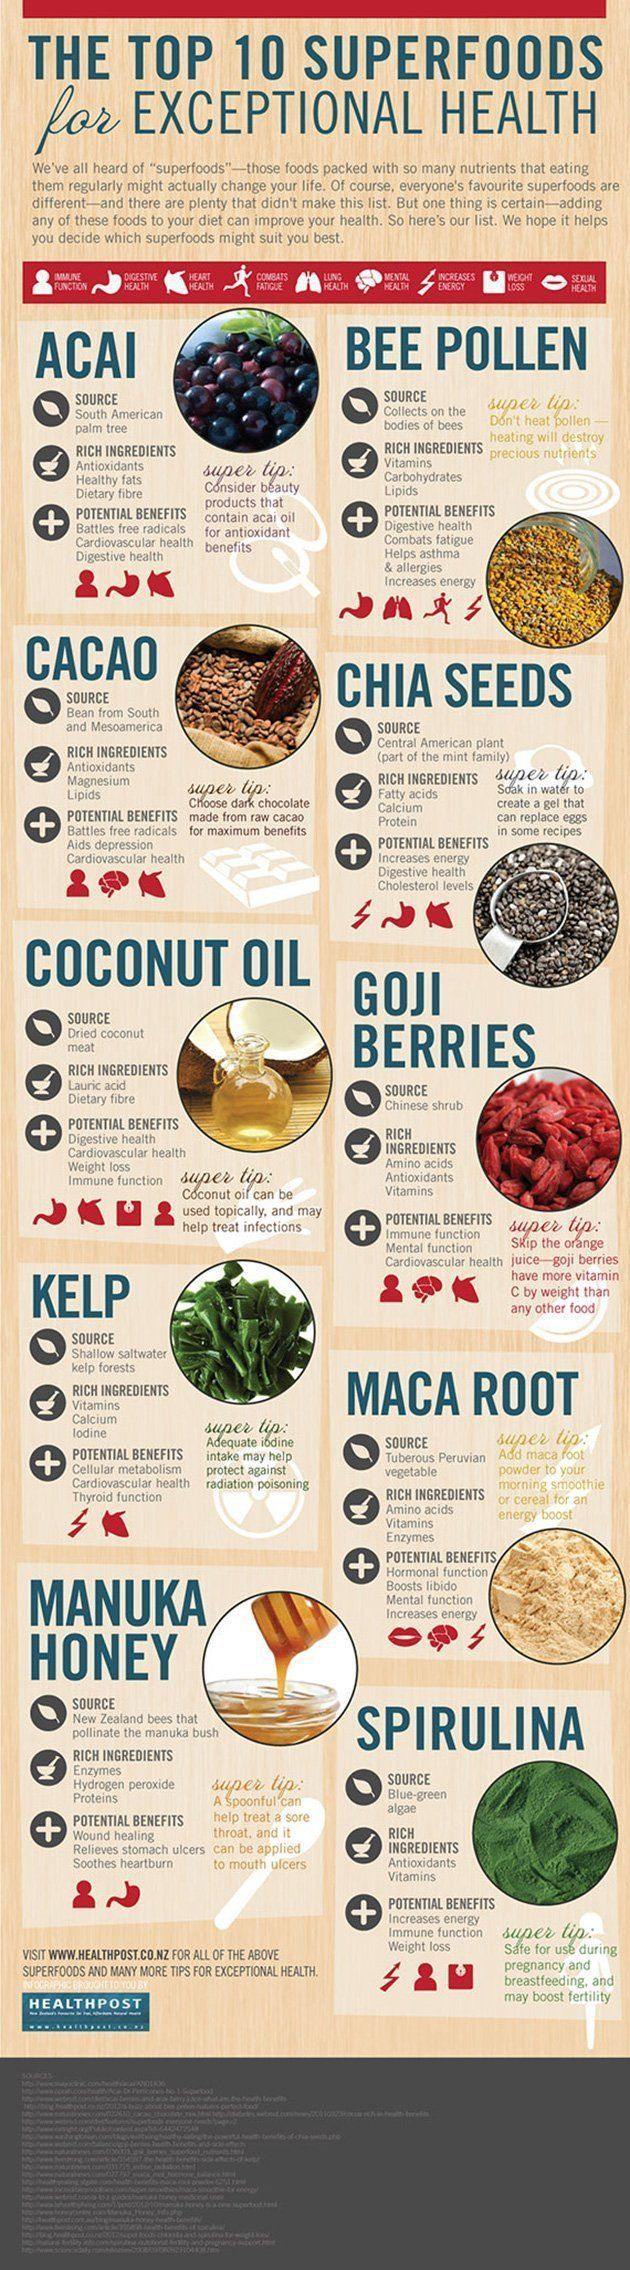 The Top 10 Superfoods for Exceptional Health Infographic healthy food, healthy lifestyle #healthy